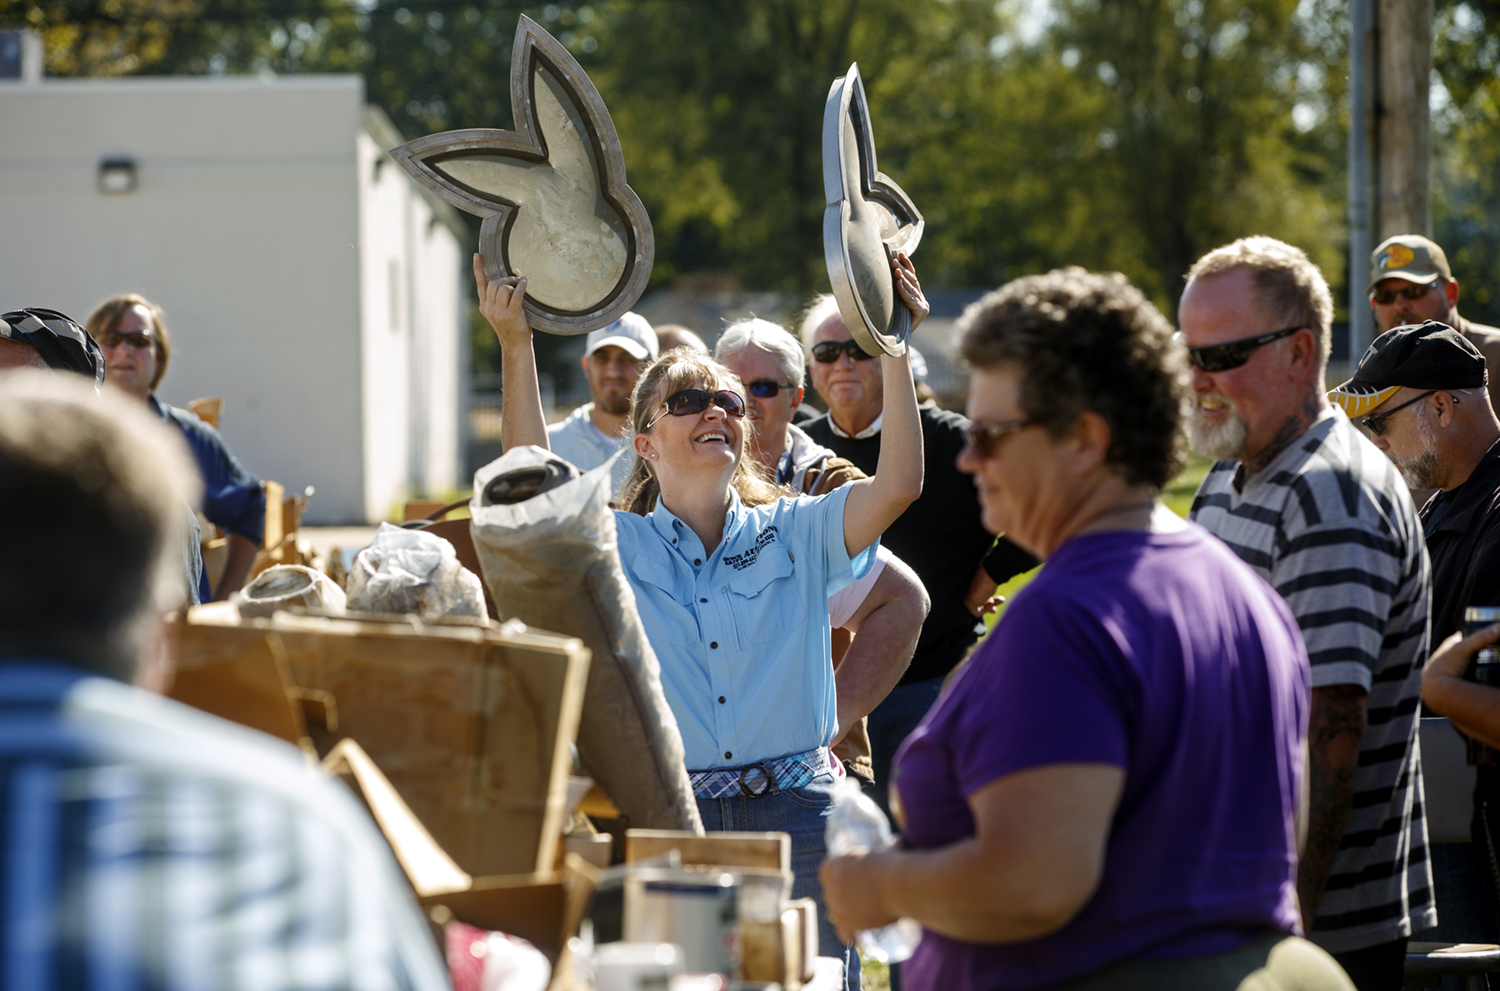 Tammy Covi holds up a pair of ears for sale at Shea's Gas Station and Museum in Springfield Saturday, Oct. 10, 2015. The Route 66 landmark first opened in 1995 at 2075 Peoria Road by Bill Shea, who passed away in December 2013. Ted Schurter/The State Journal-Register